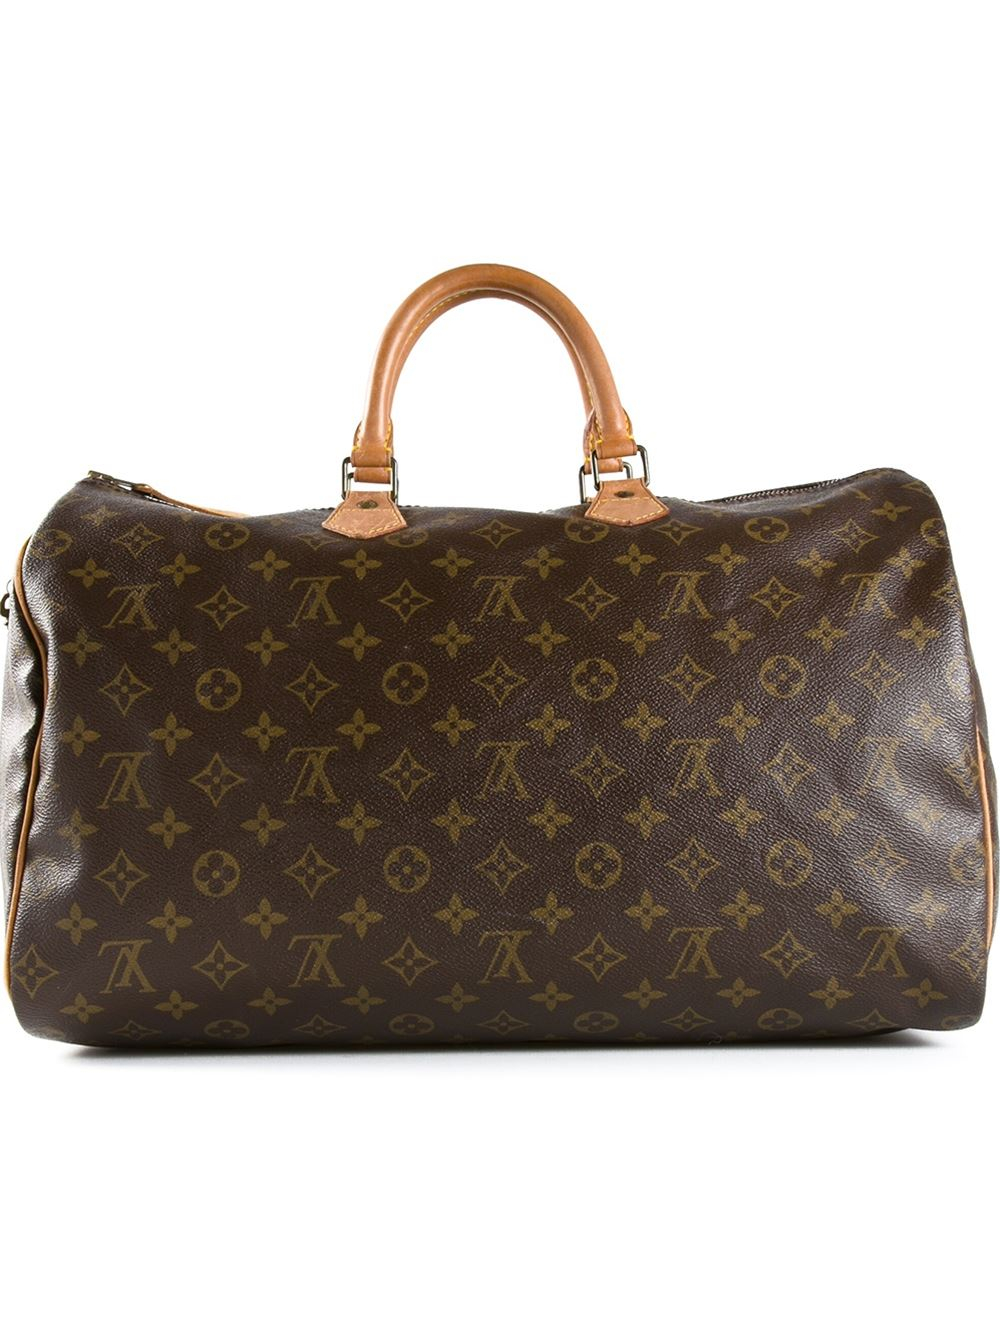 Louis vuitton Monogram Speedy 40 Bag in Brown | Lyst